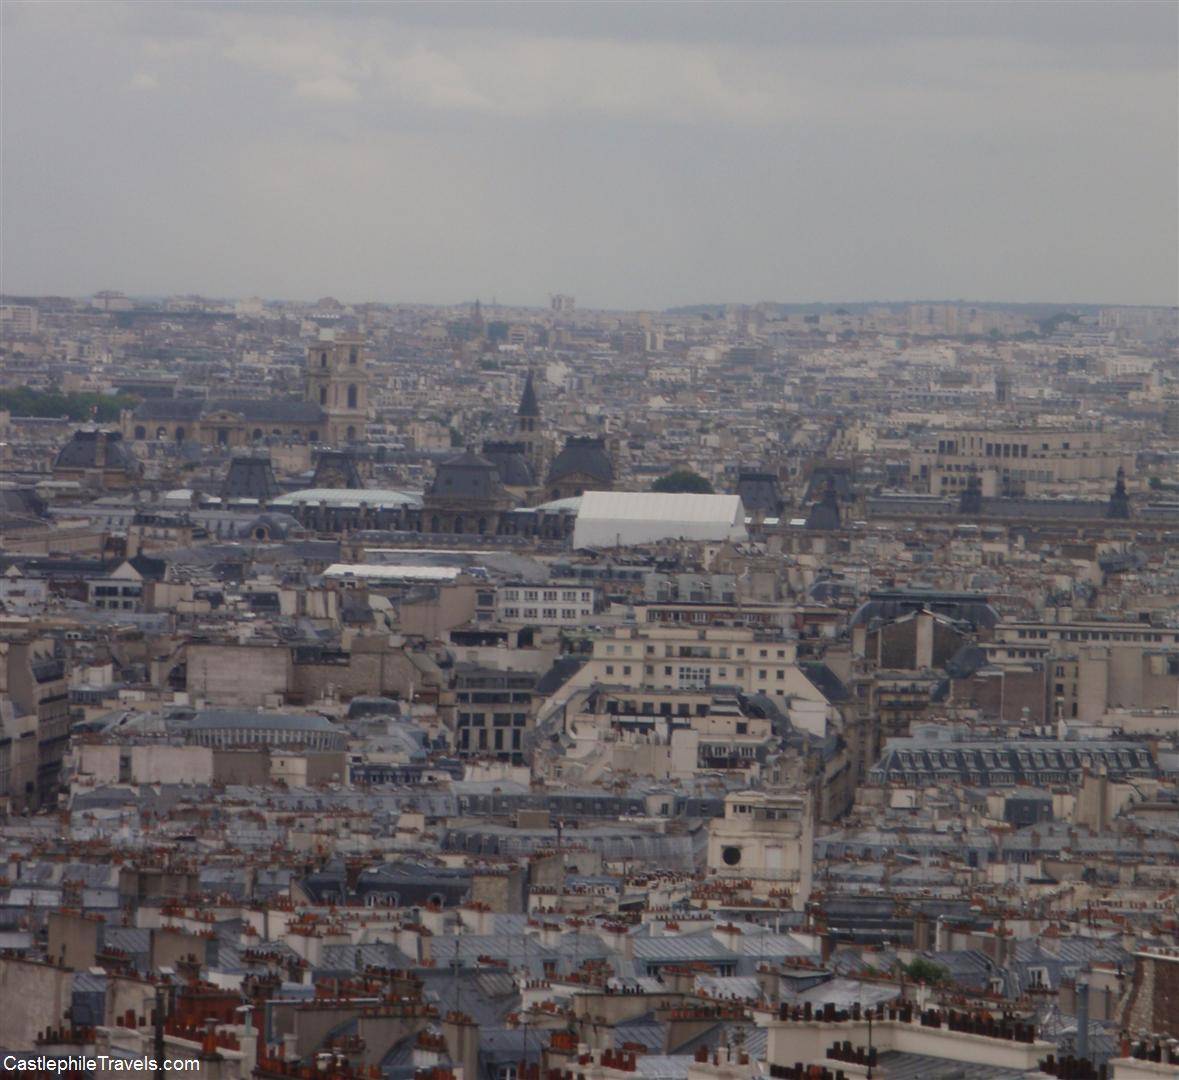 The view over Montmartre